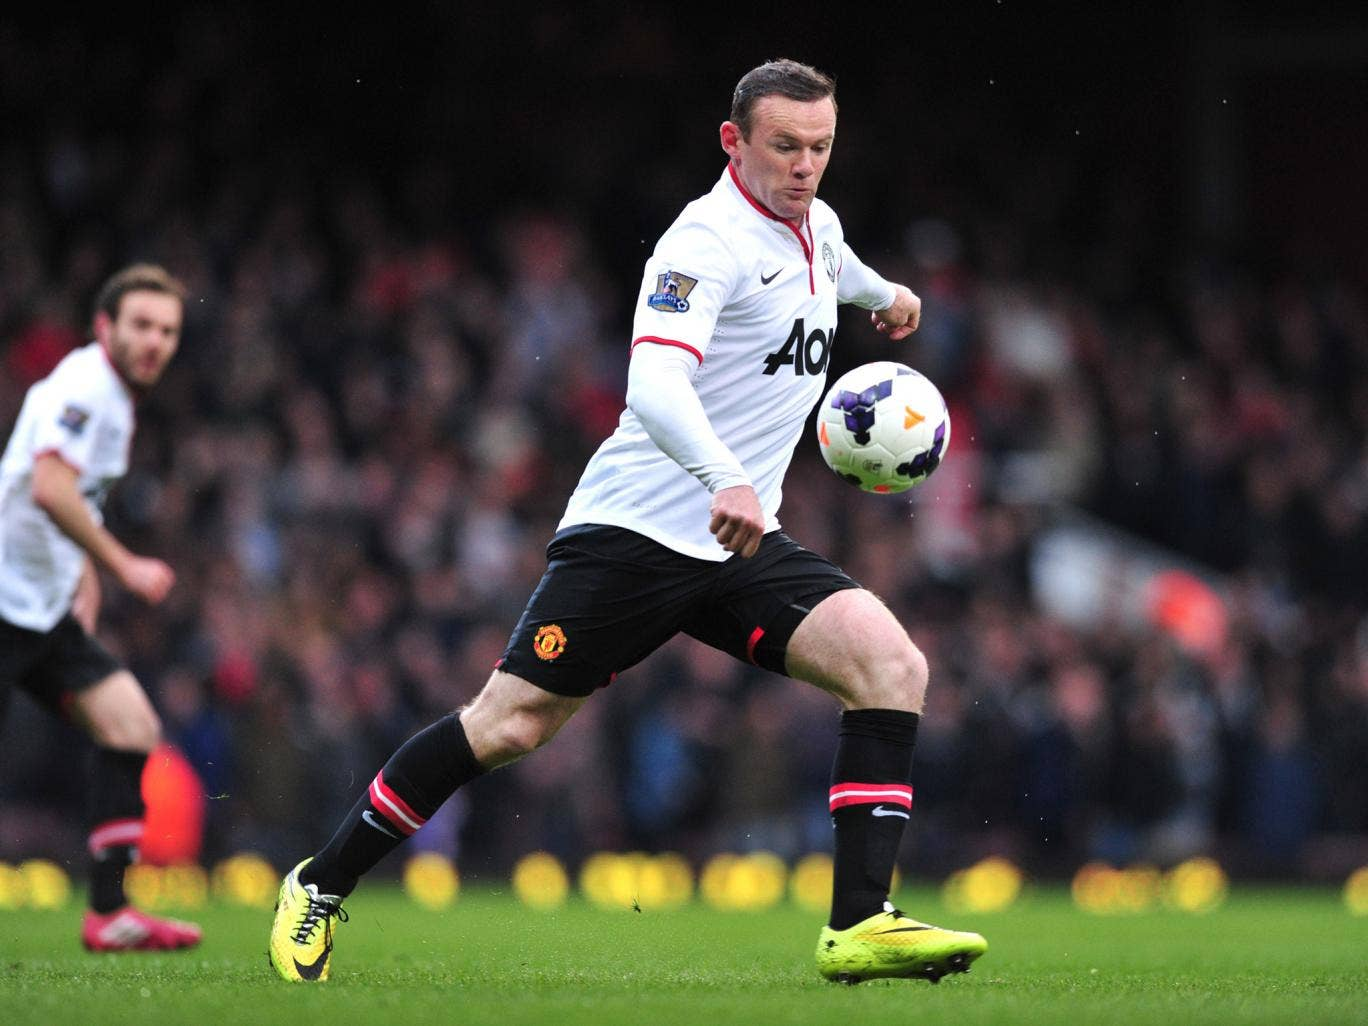 Wayne Rooney scores from 58 yards to put Manchester United 1-0 up against West Ham